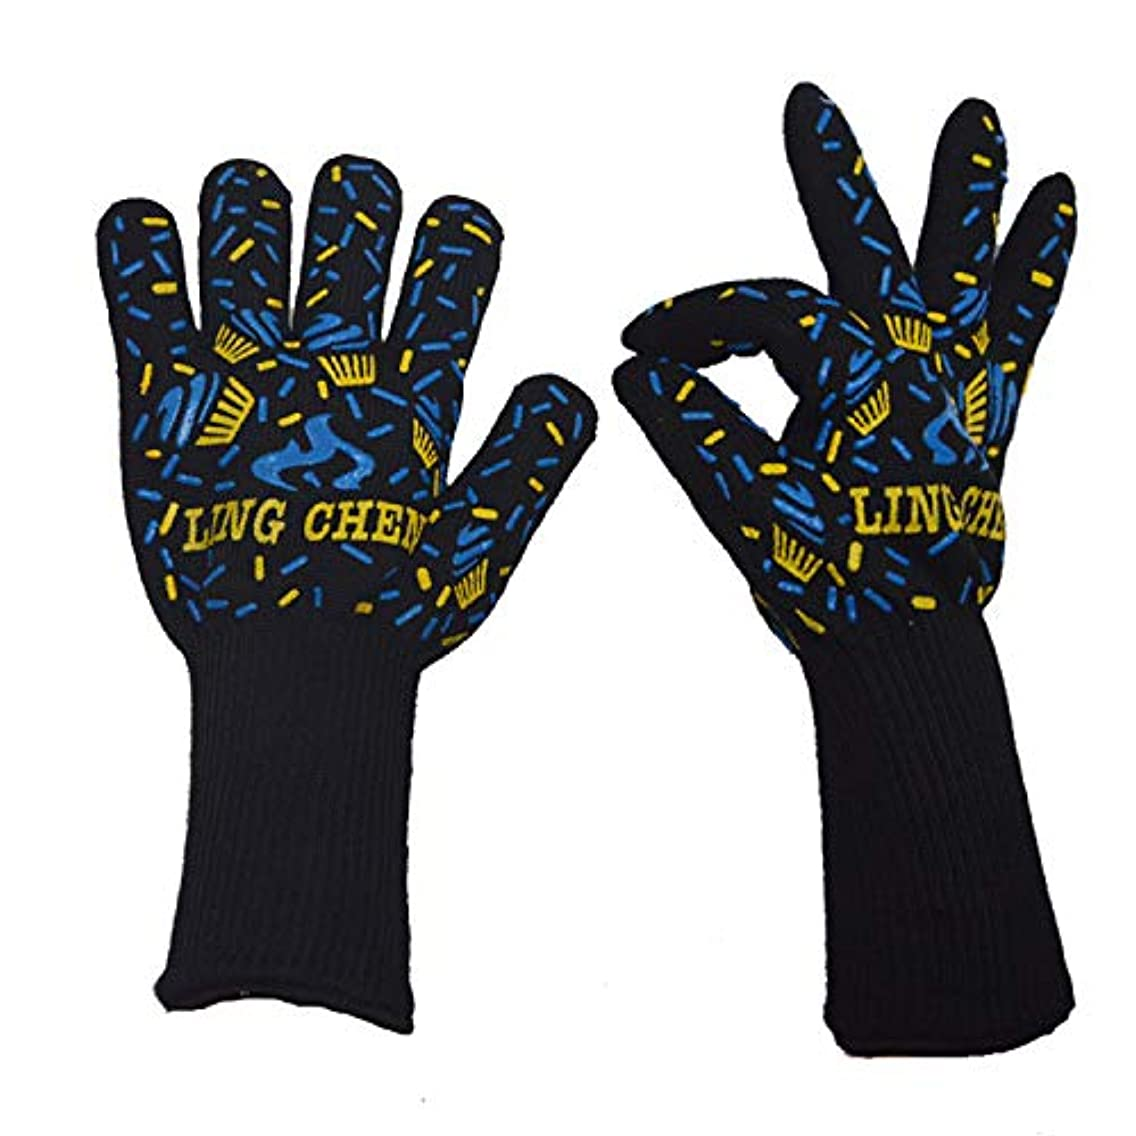 Extreme Heat Resistant Grill-BBQ Gloves Oven Mitt, Designed For Cooking, Kitchen, Fireplace, Grilling (Size : L(13 in), UnitCount : 2 Pairs)